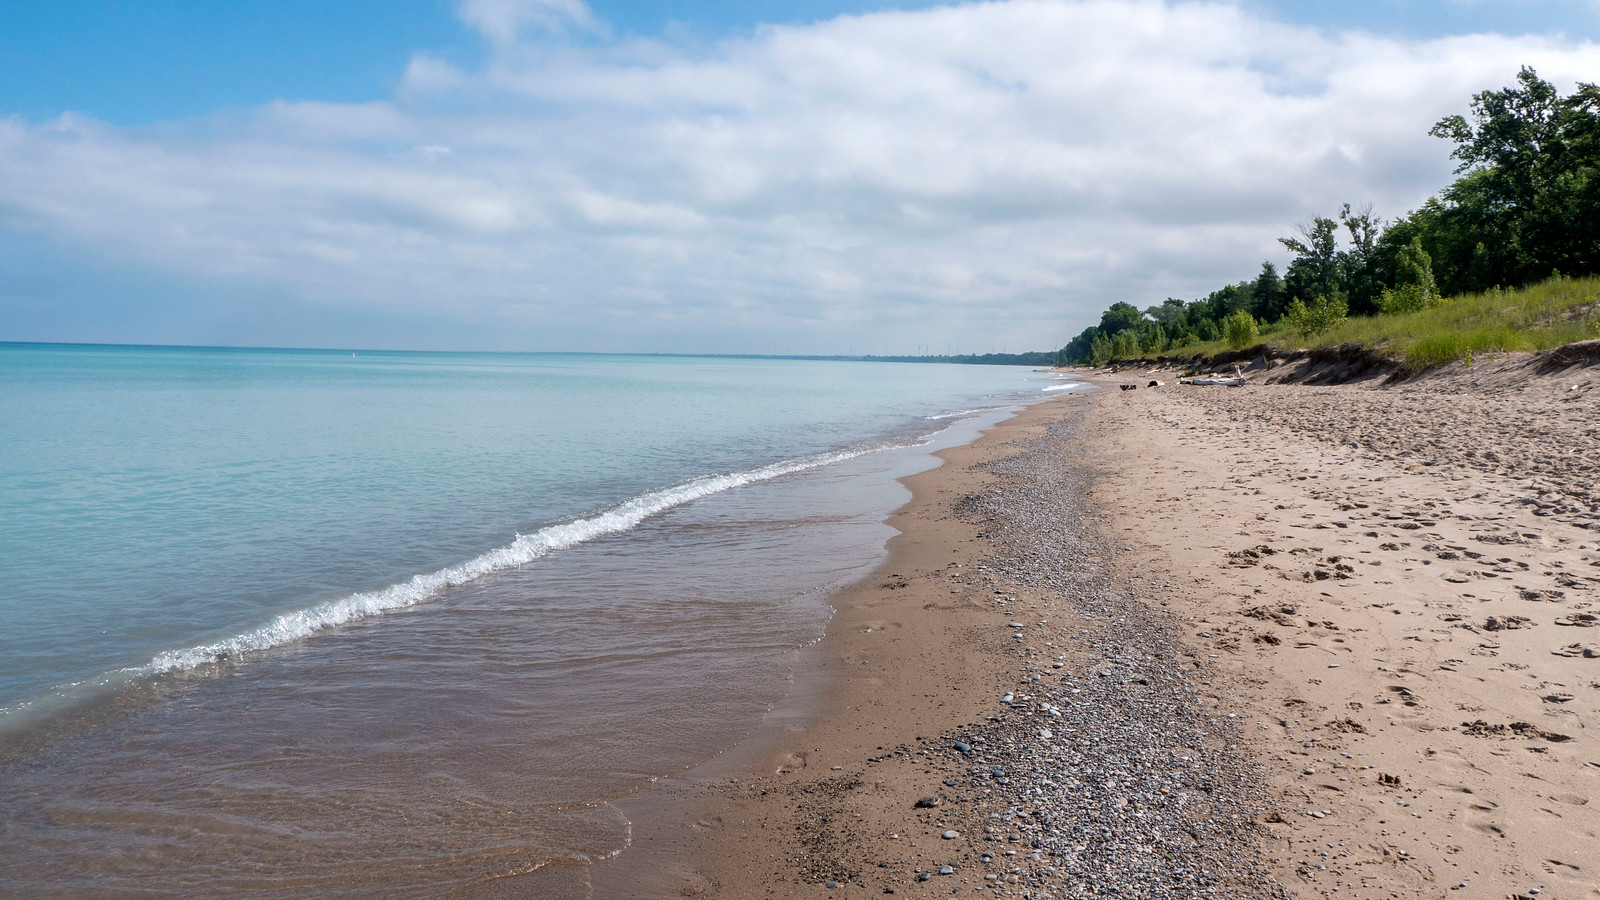 Grand Bend Beach, Lake Huron, Ontario, Canada. Turquoise waters, isolated beach.